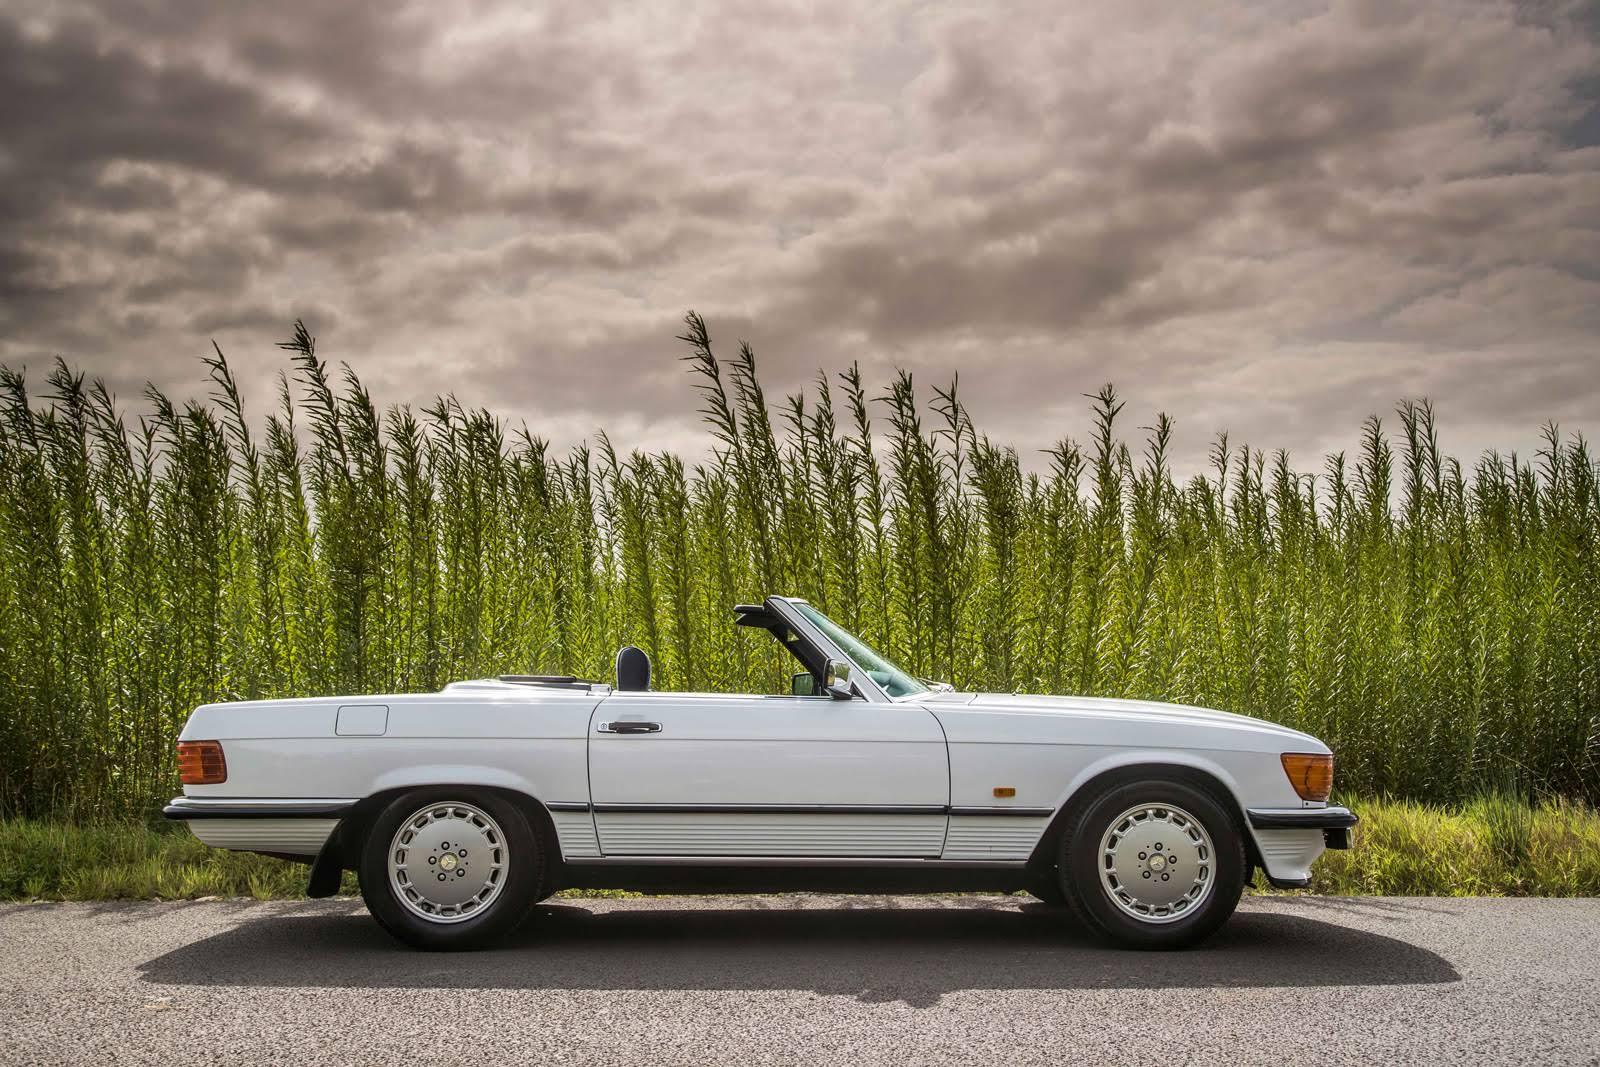 Mercedes benz 300 sl for hire in stratford upon avon for Mercedes benz for rent